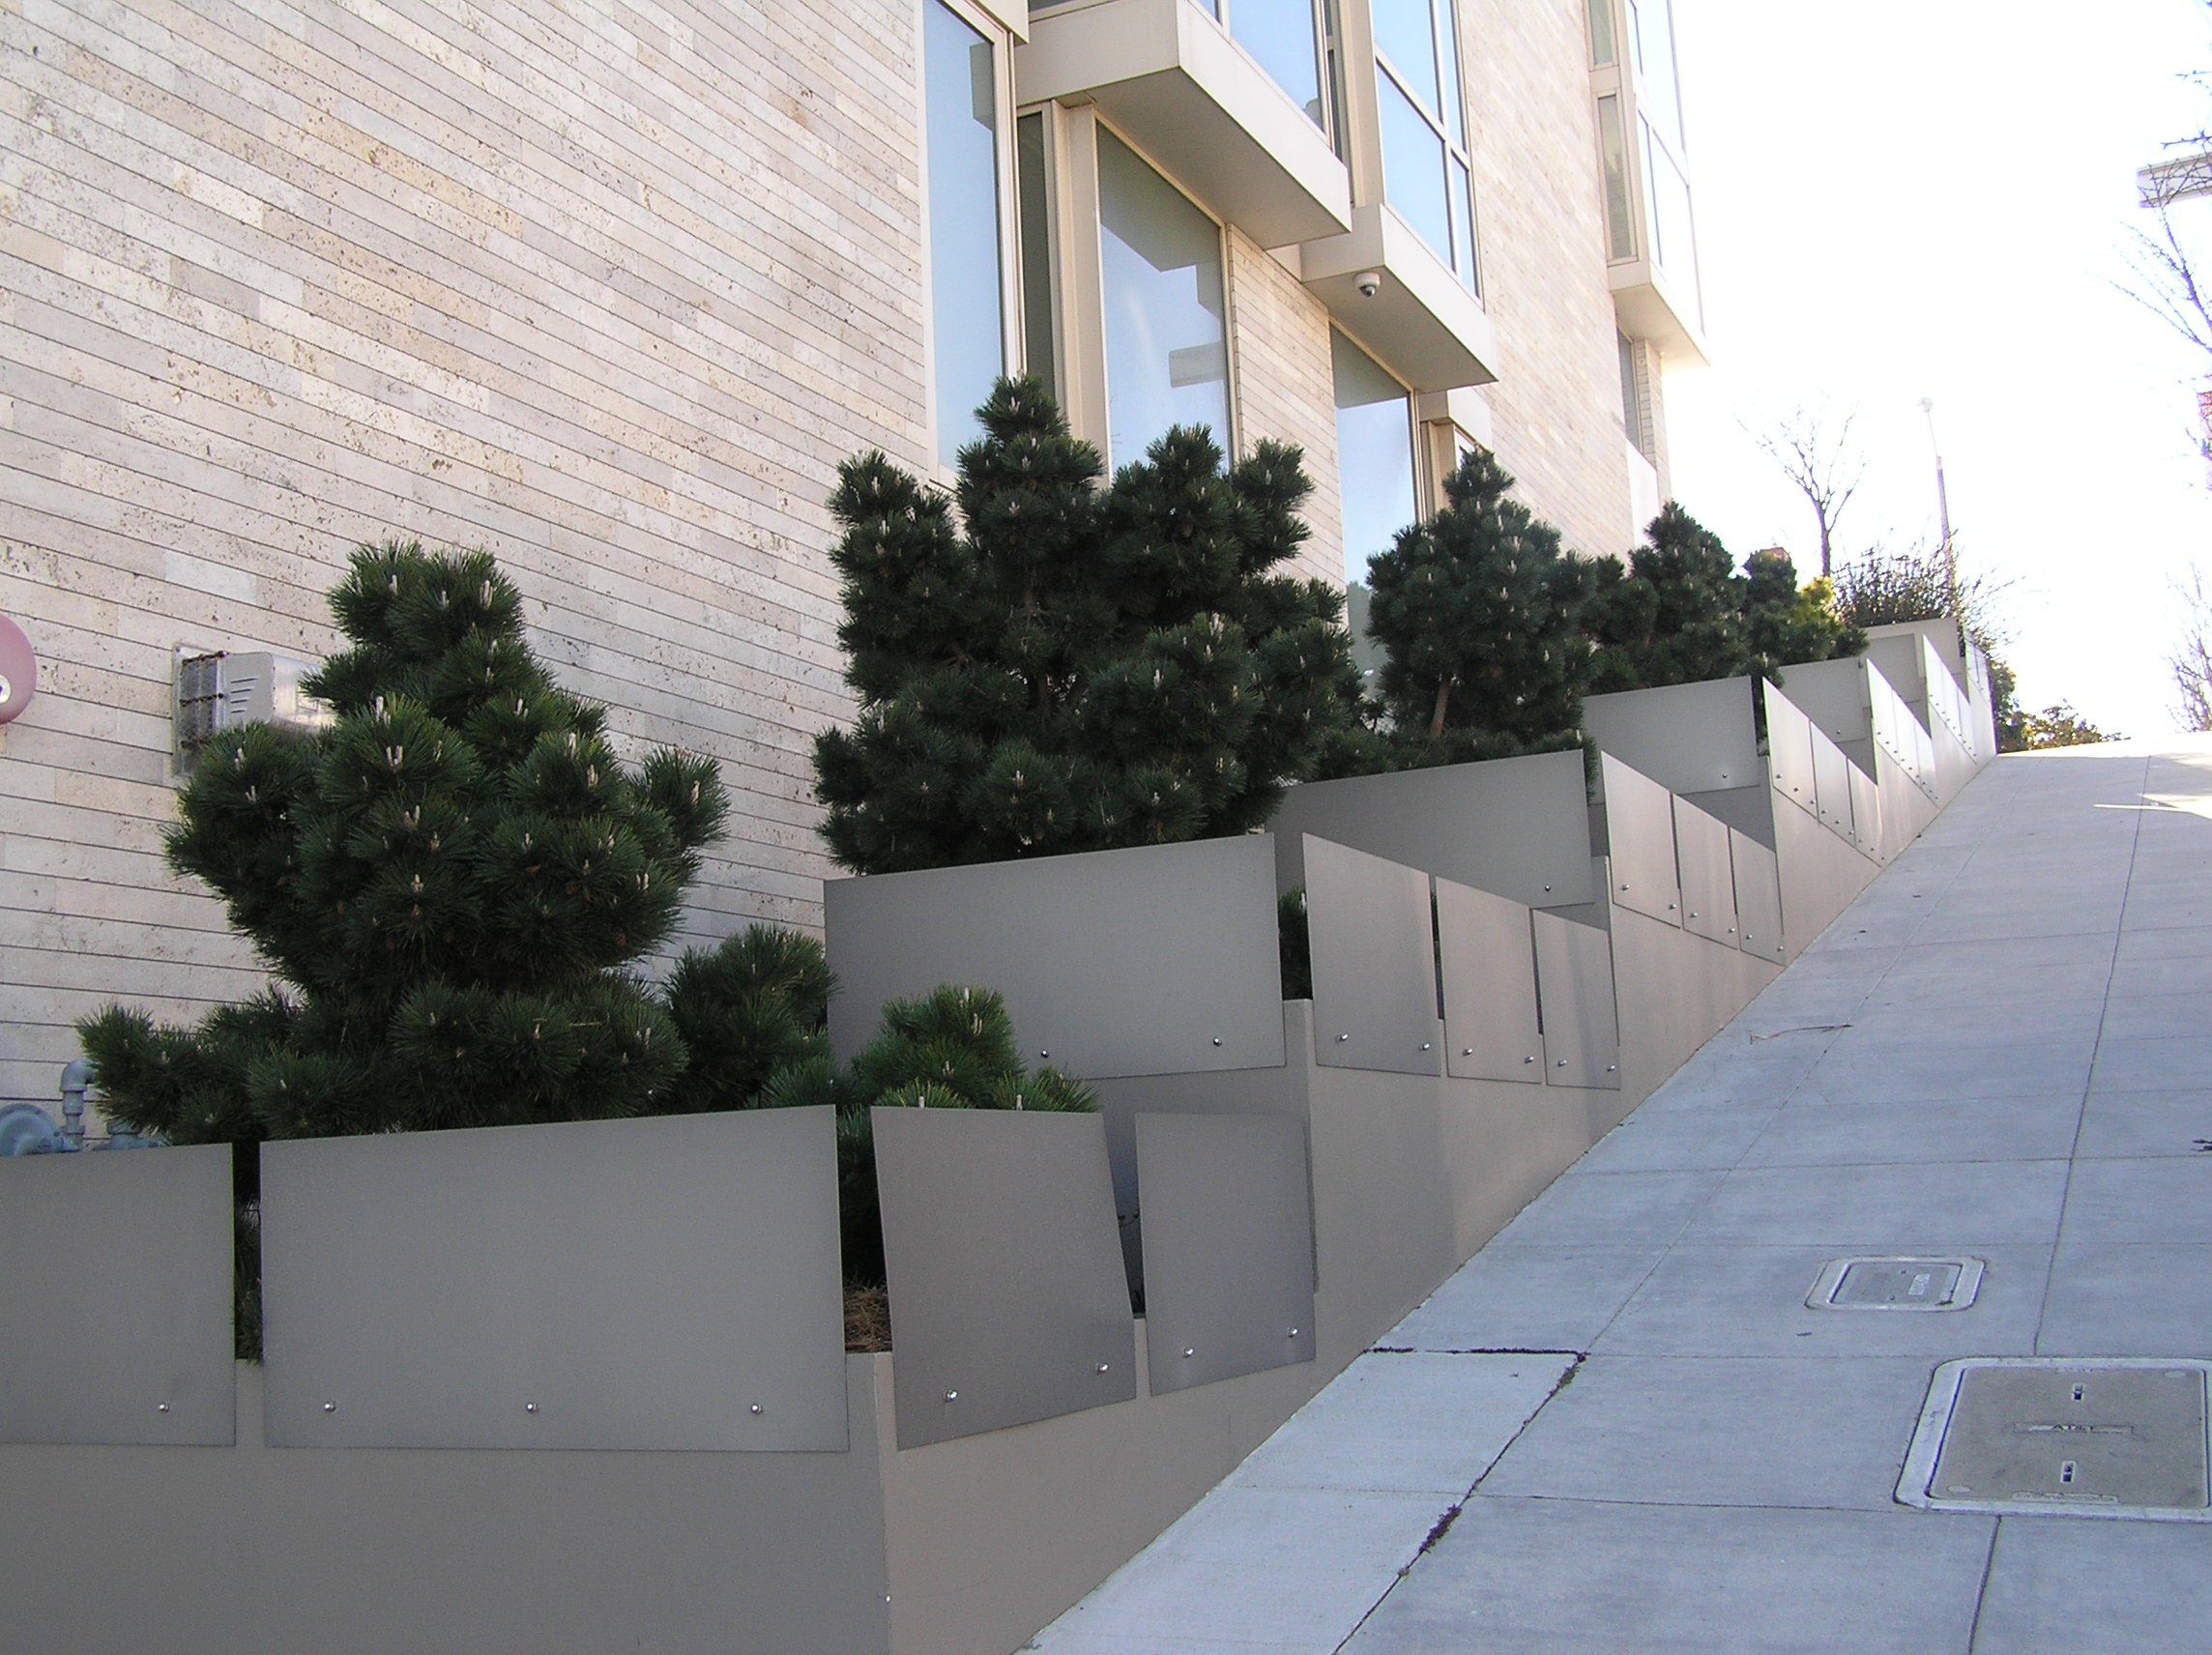 These pines work well to add structure, texture and color all while keeping eager tourists out of the planting beds.